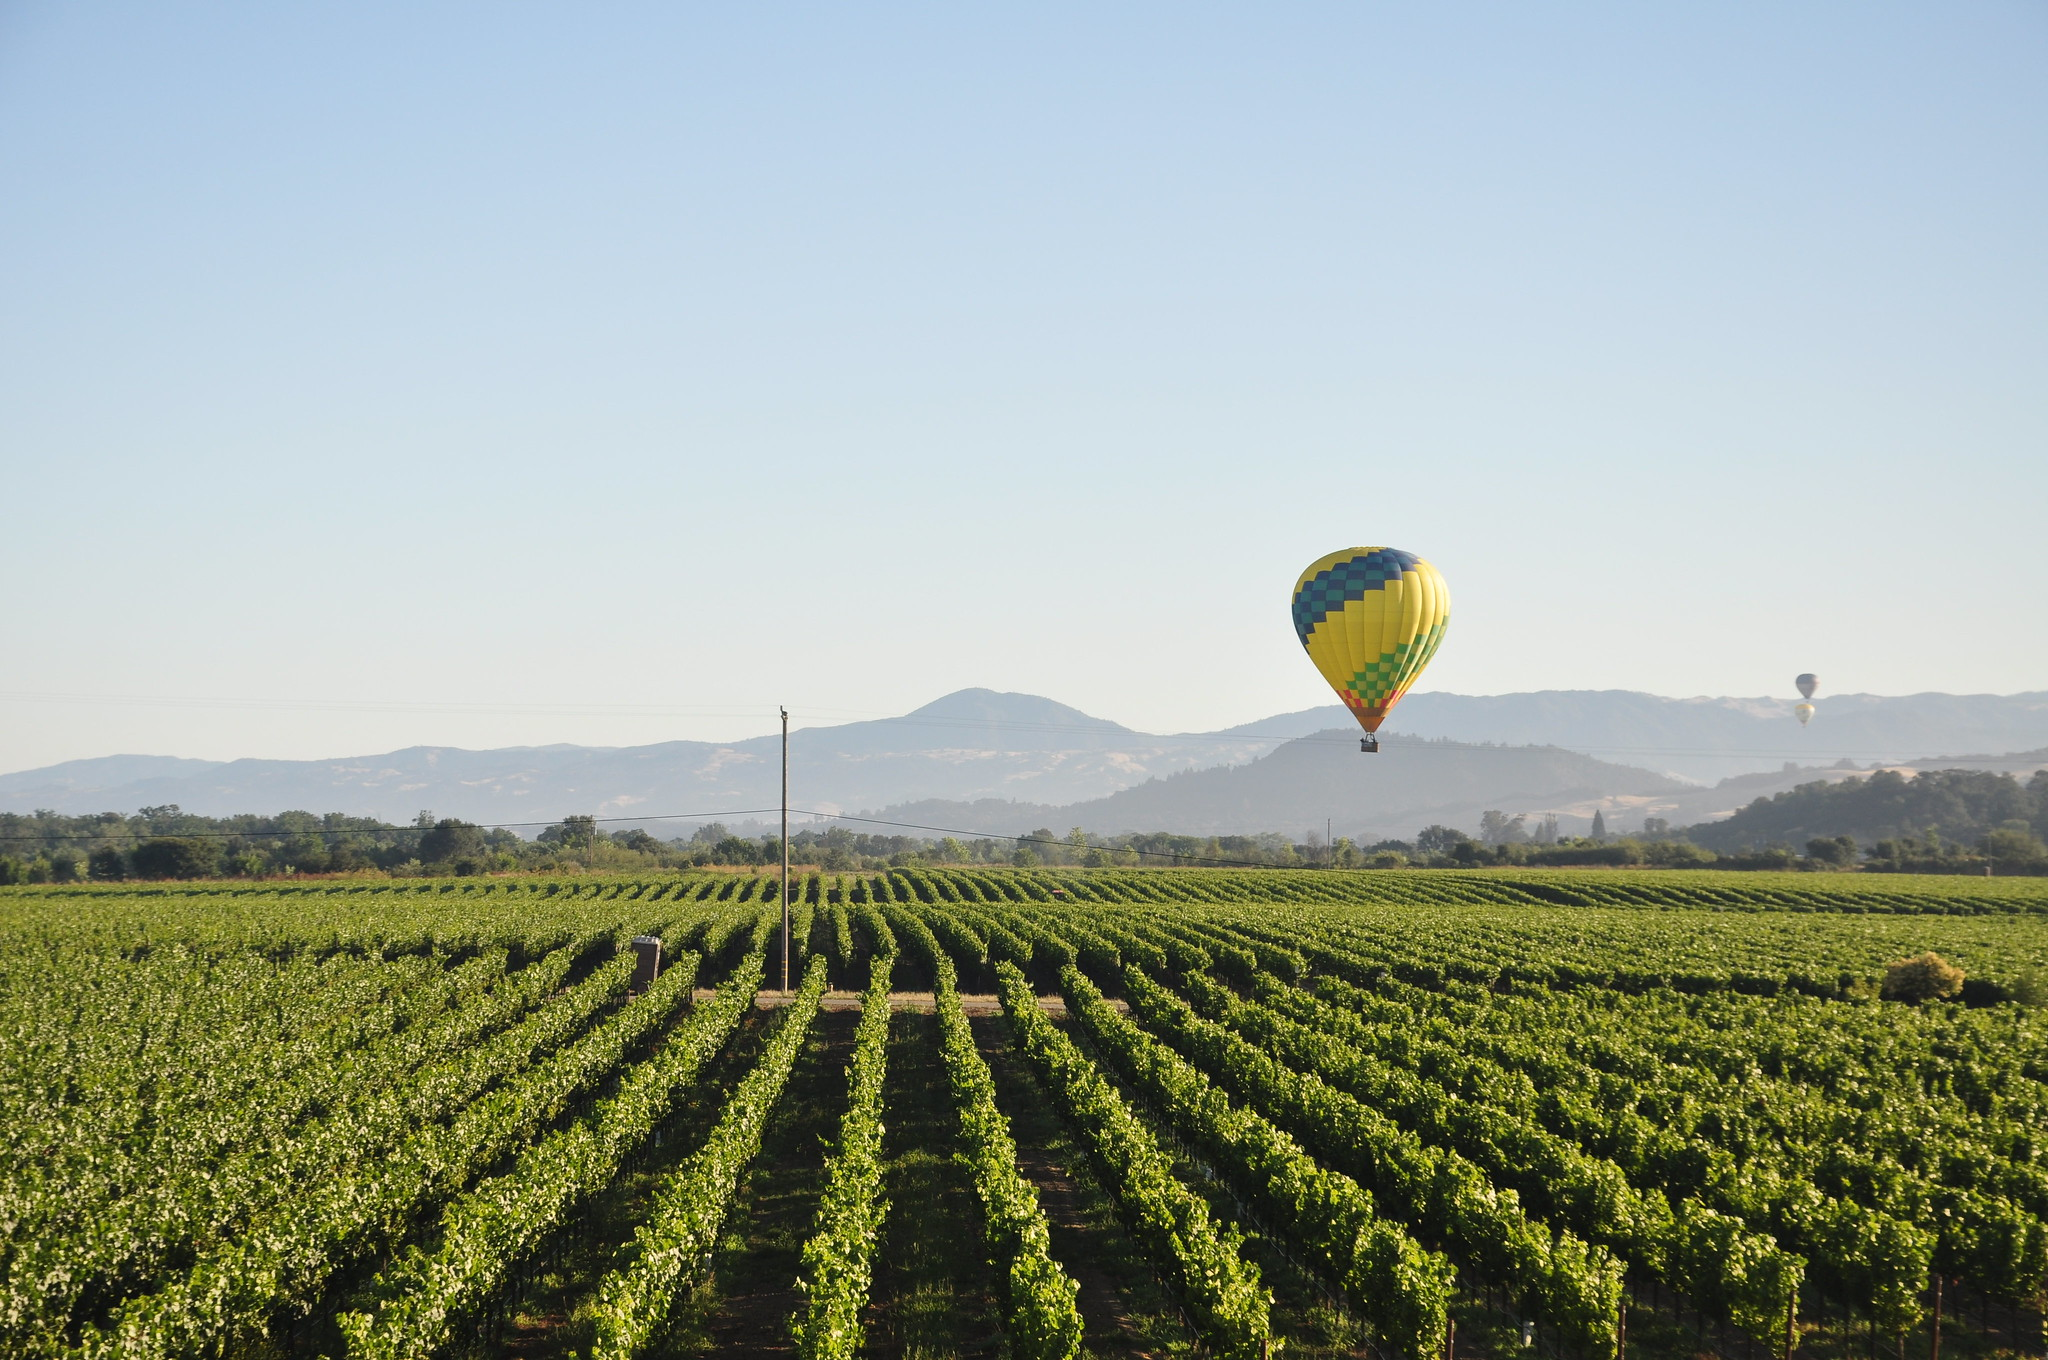 15 Things to do in Calistoga, California